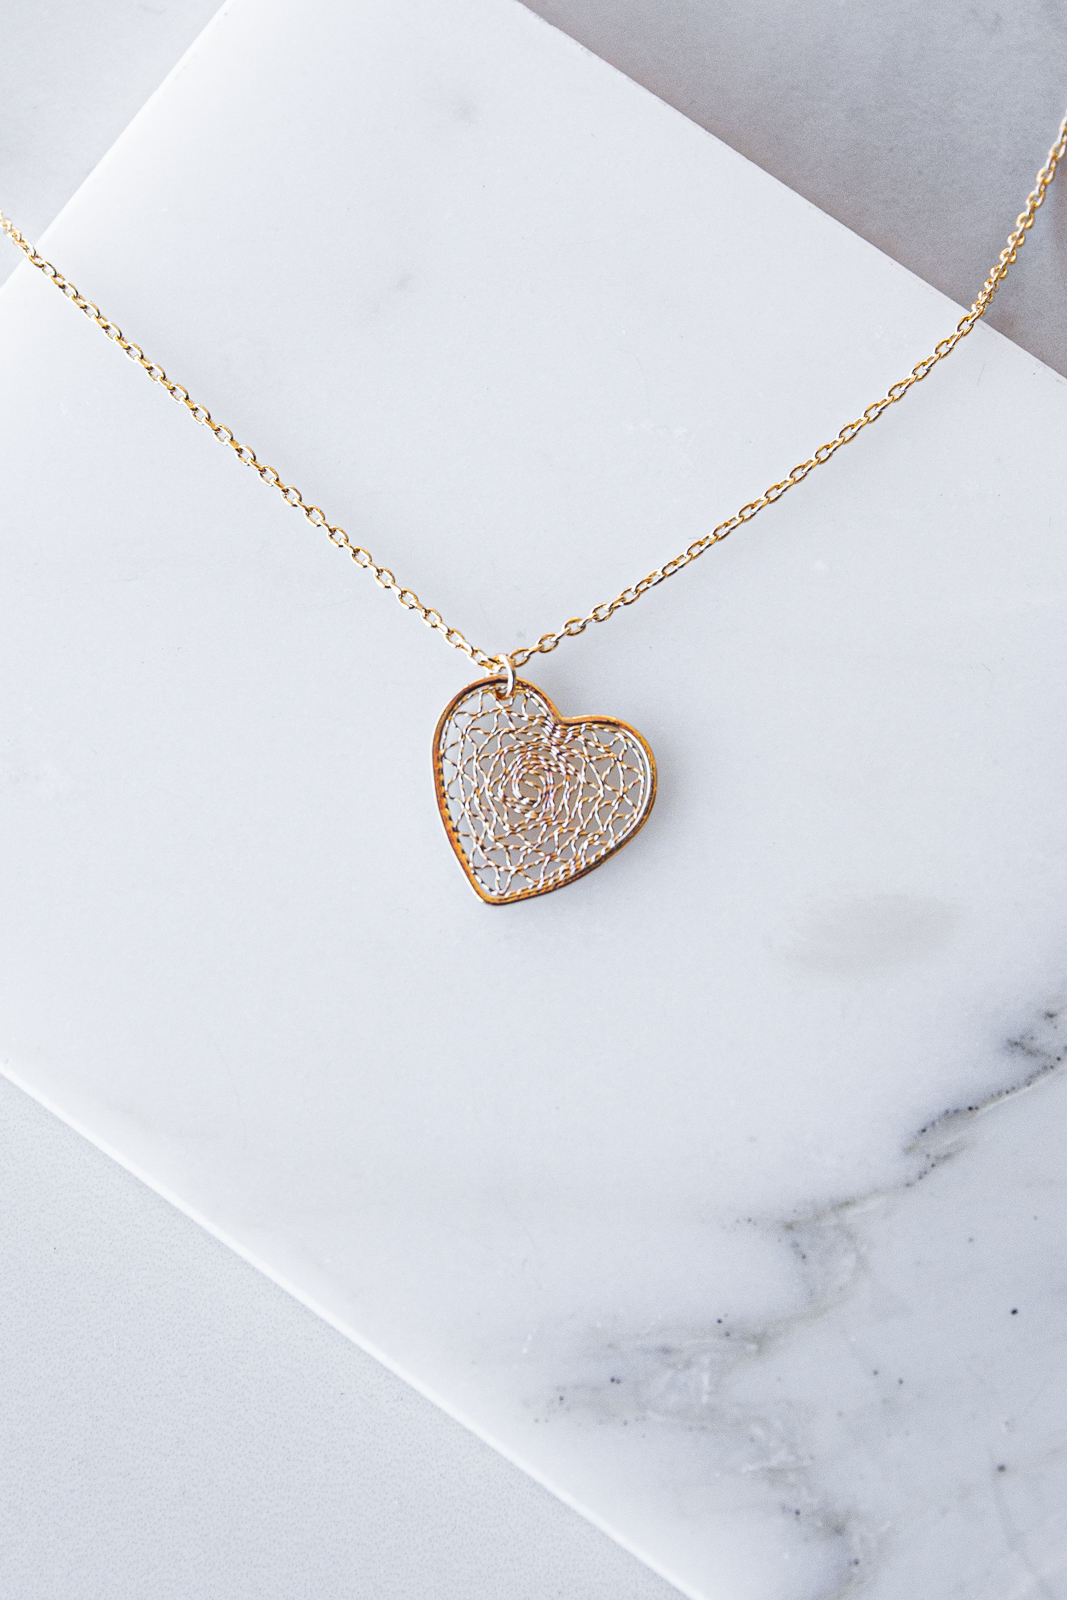 Gold Dainty Chain Necklace with Filigree Heart Charm